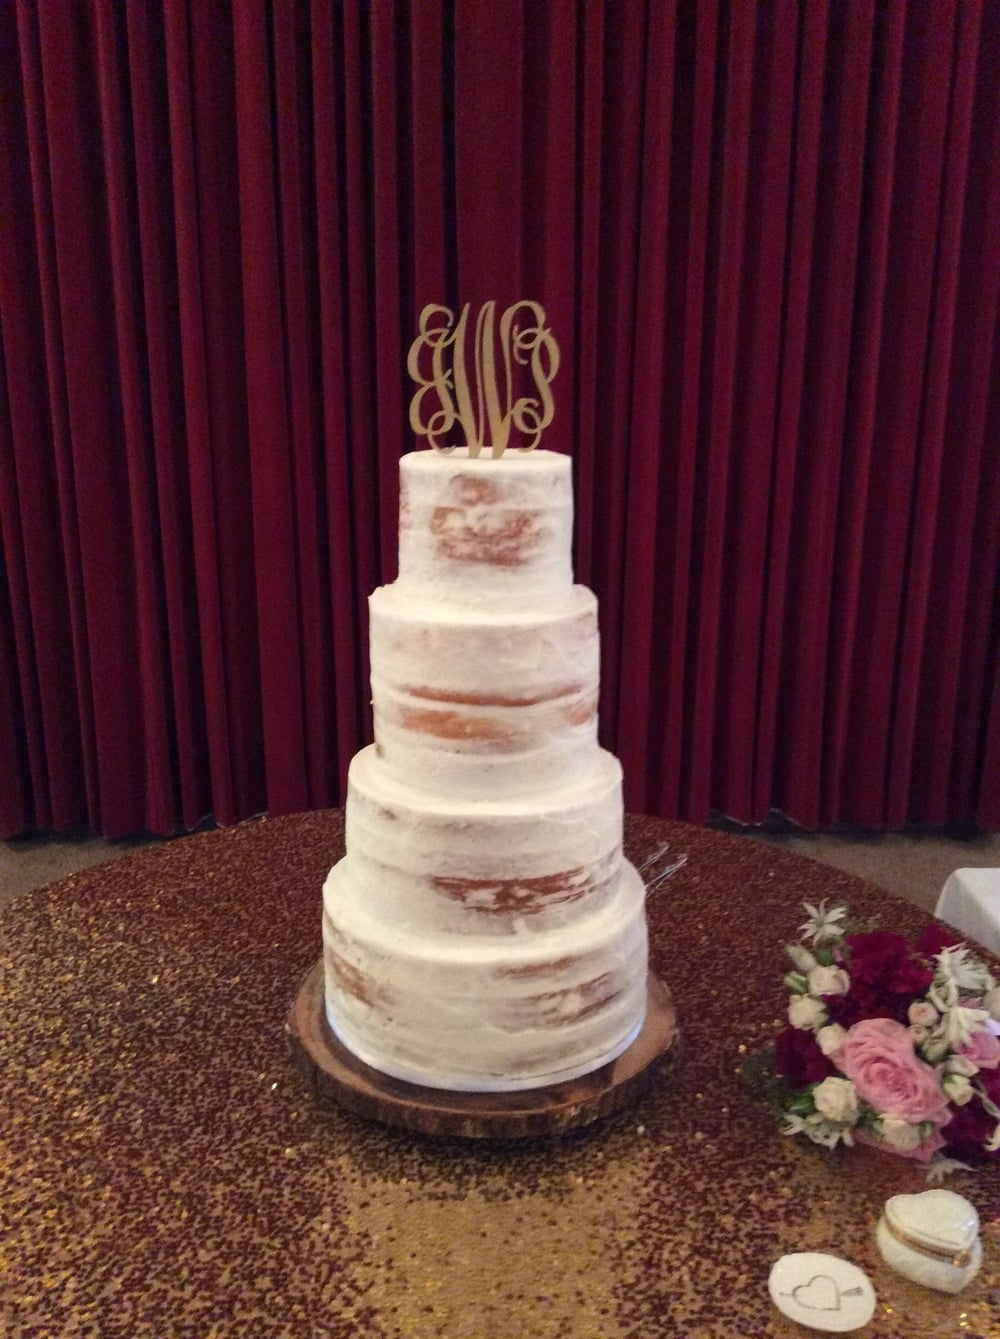 Jordan's Cake contained four delicious tiers of Caramel Apple, Lemon, Traditional White, and Raspberry Crème.